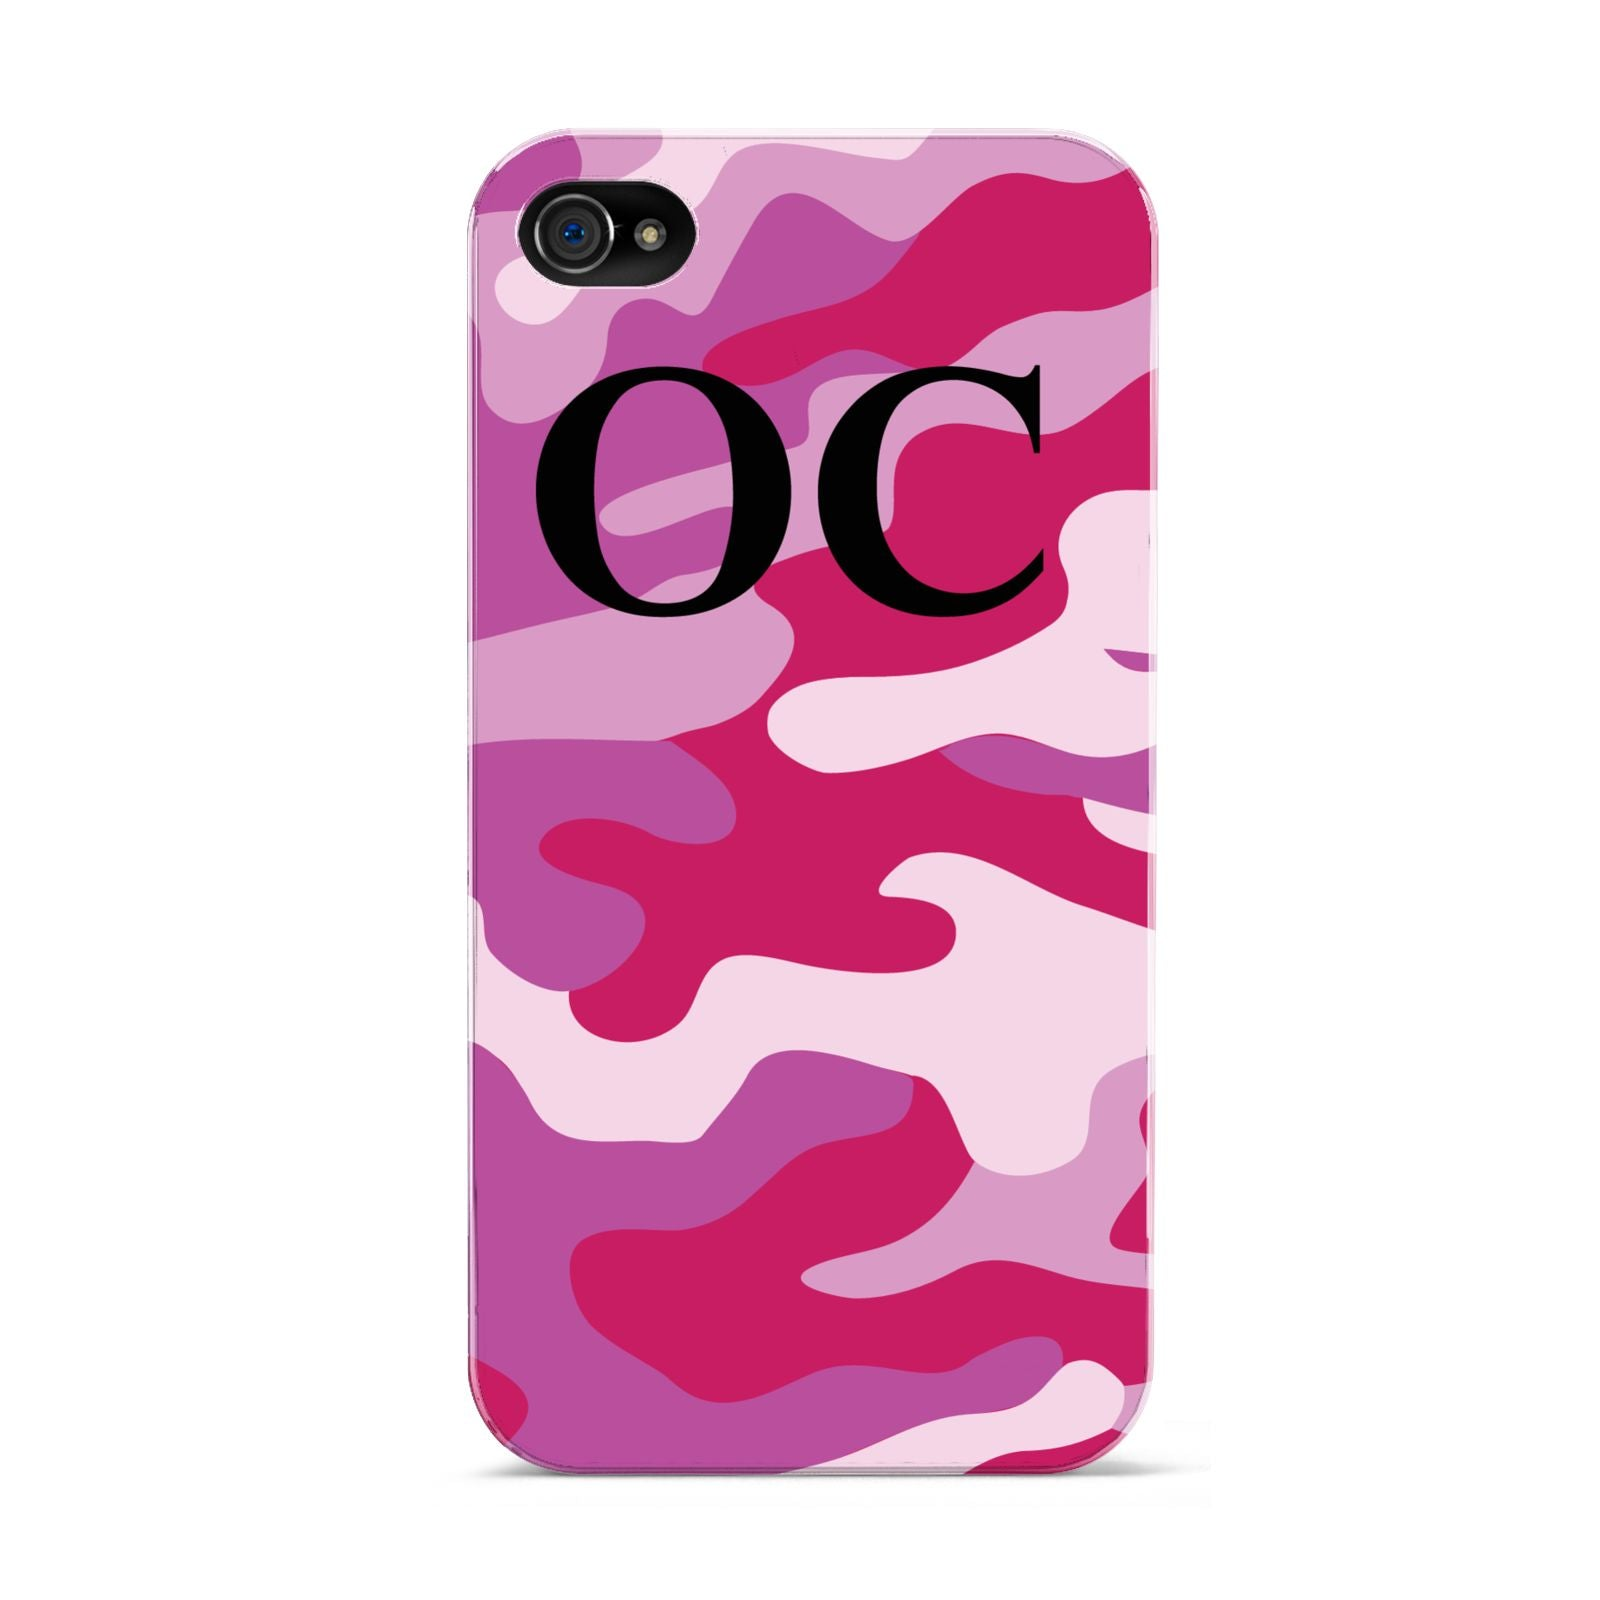 Camouflage Personalised Apple iPhone 4s Case